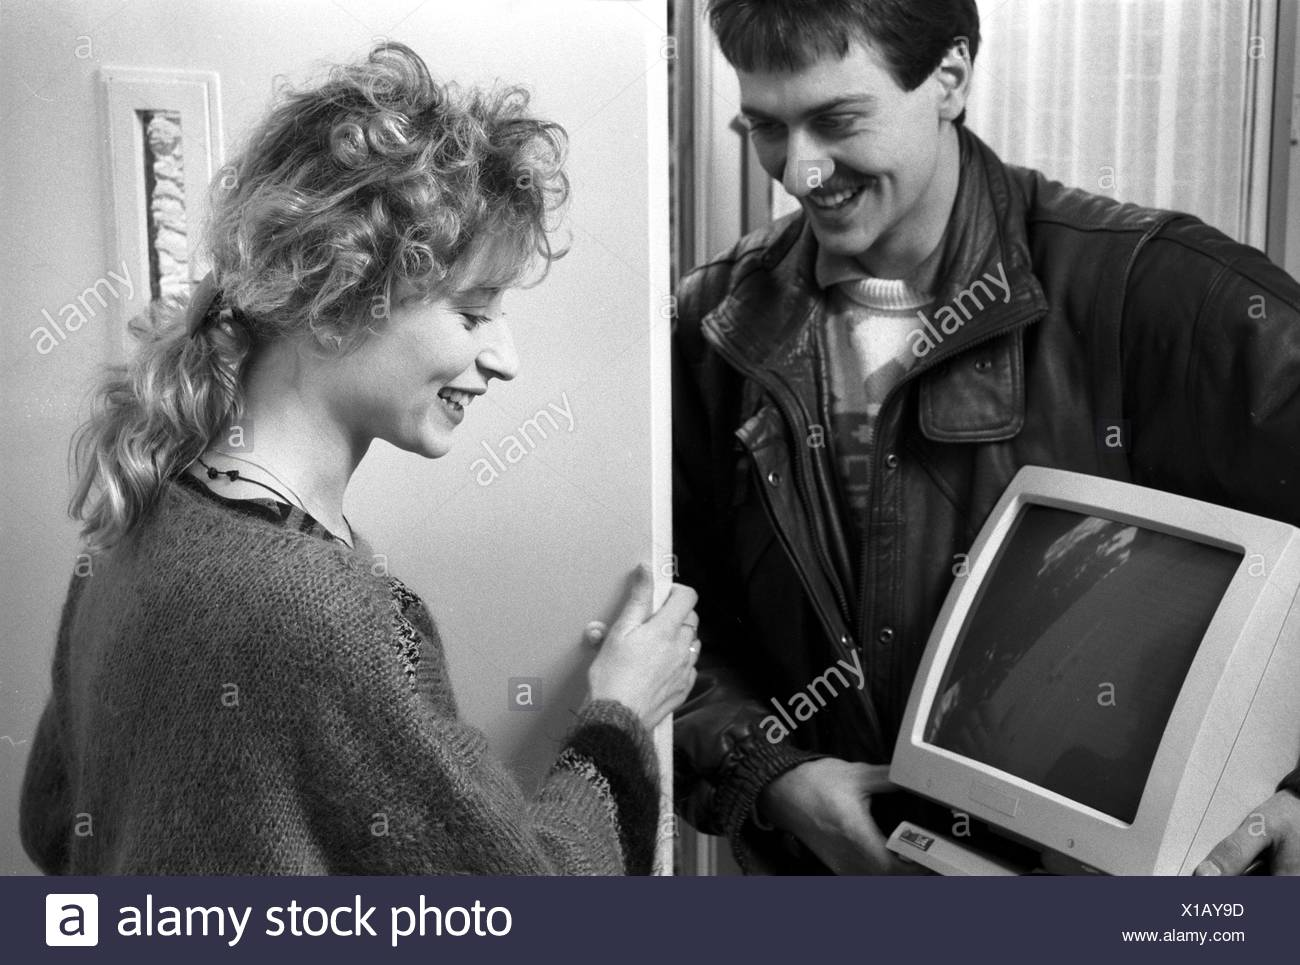 1981 Woman getting her first computer from man standing at front door holding computer screen in his hands, both smile - Stock Image